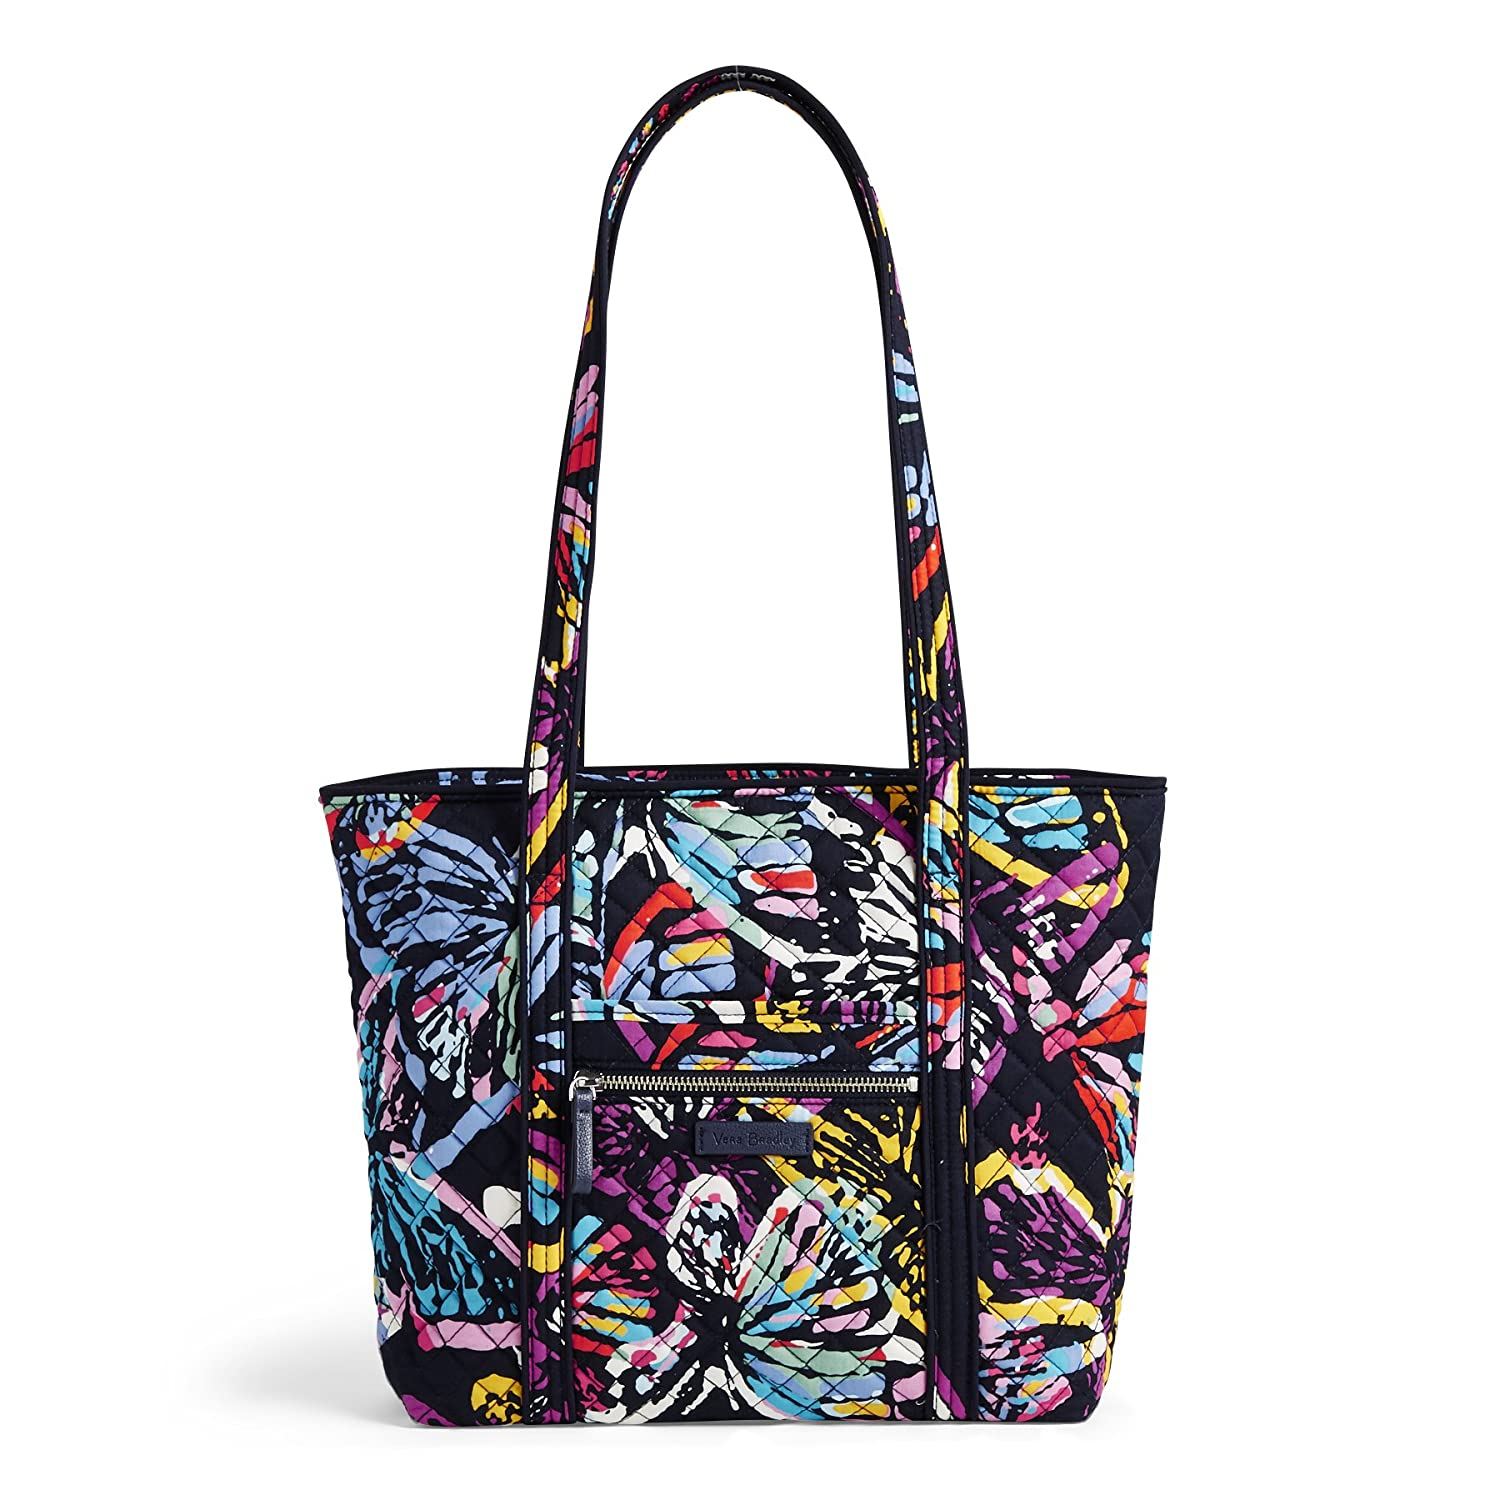 6e9435a8588 Amazon.com  Vera Bradley Iconic Small Vera Tote, Signature Cotton,  Butterfly Flutter  Clothing